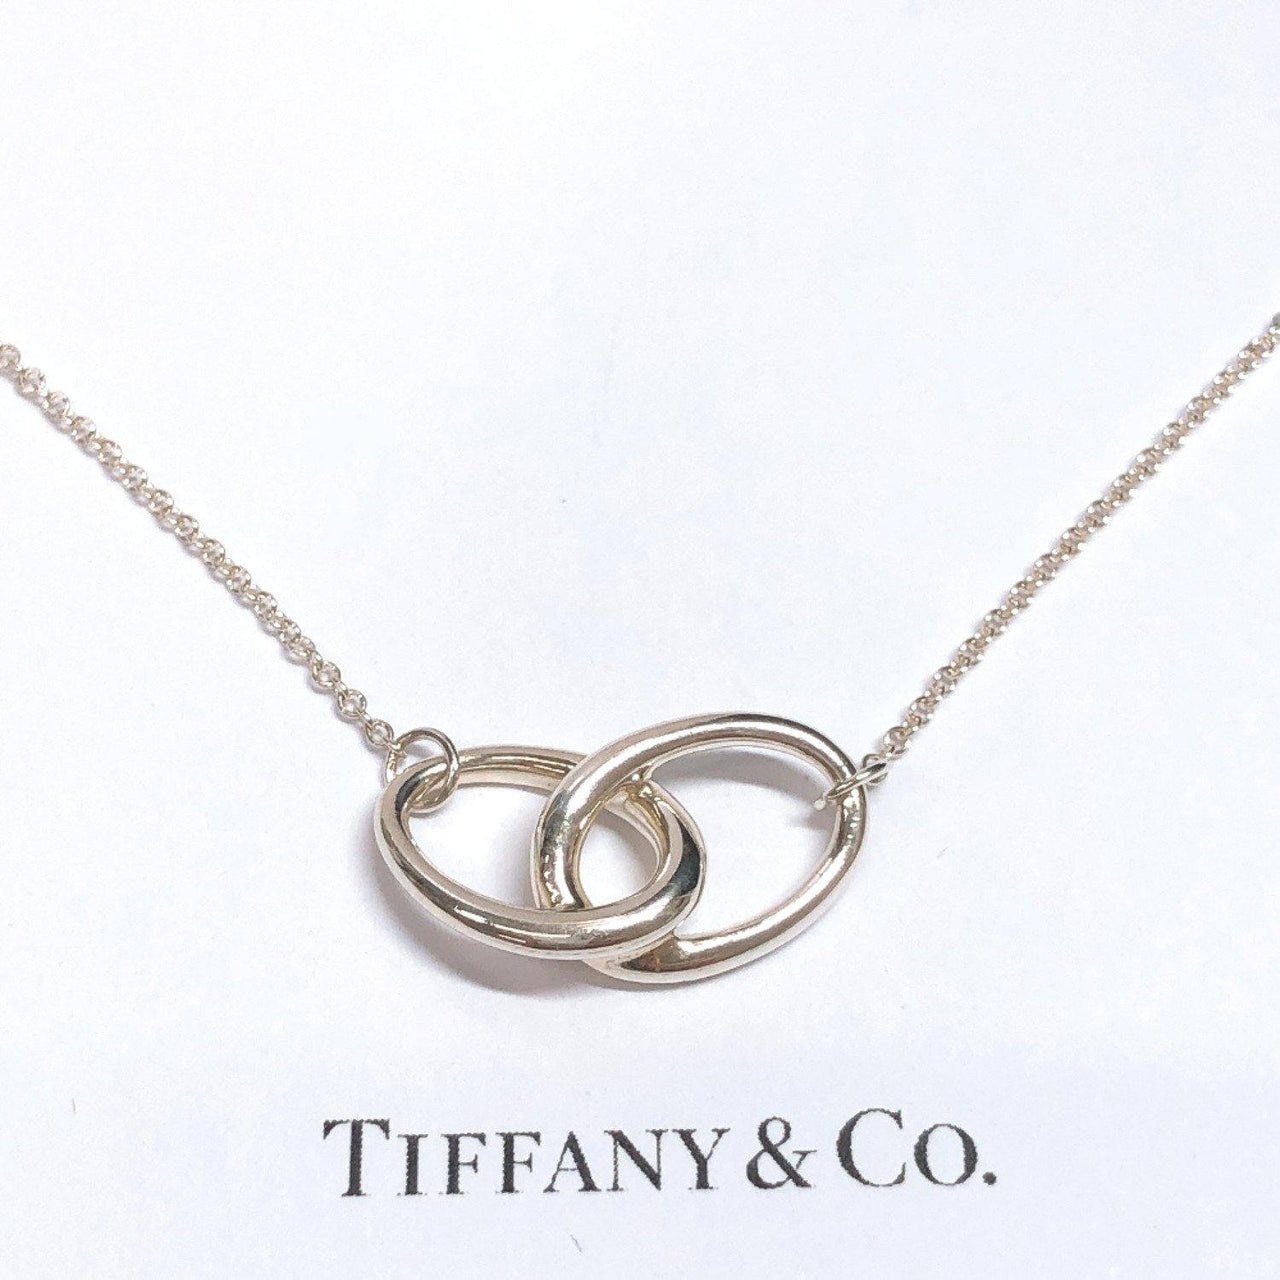 TIFFANY&Co. Necklace Double loop Elsa Peretti Silver925 Silver Women Used - JP-BRANDS.com